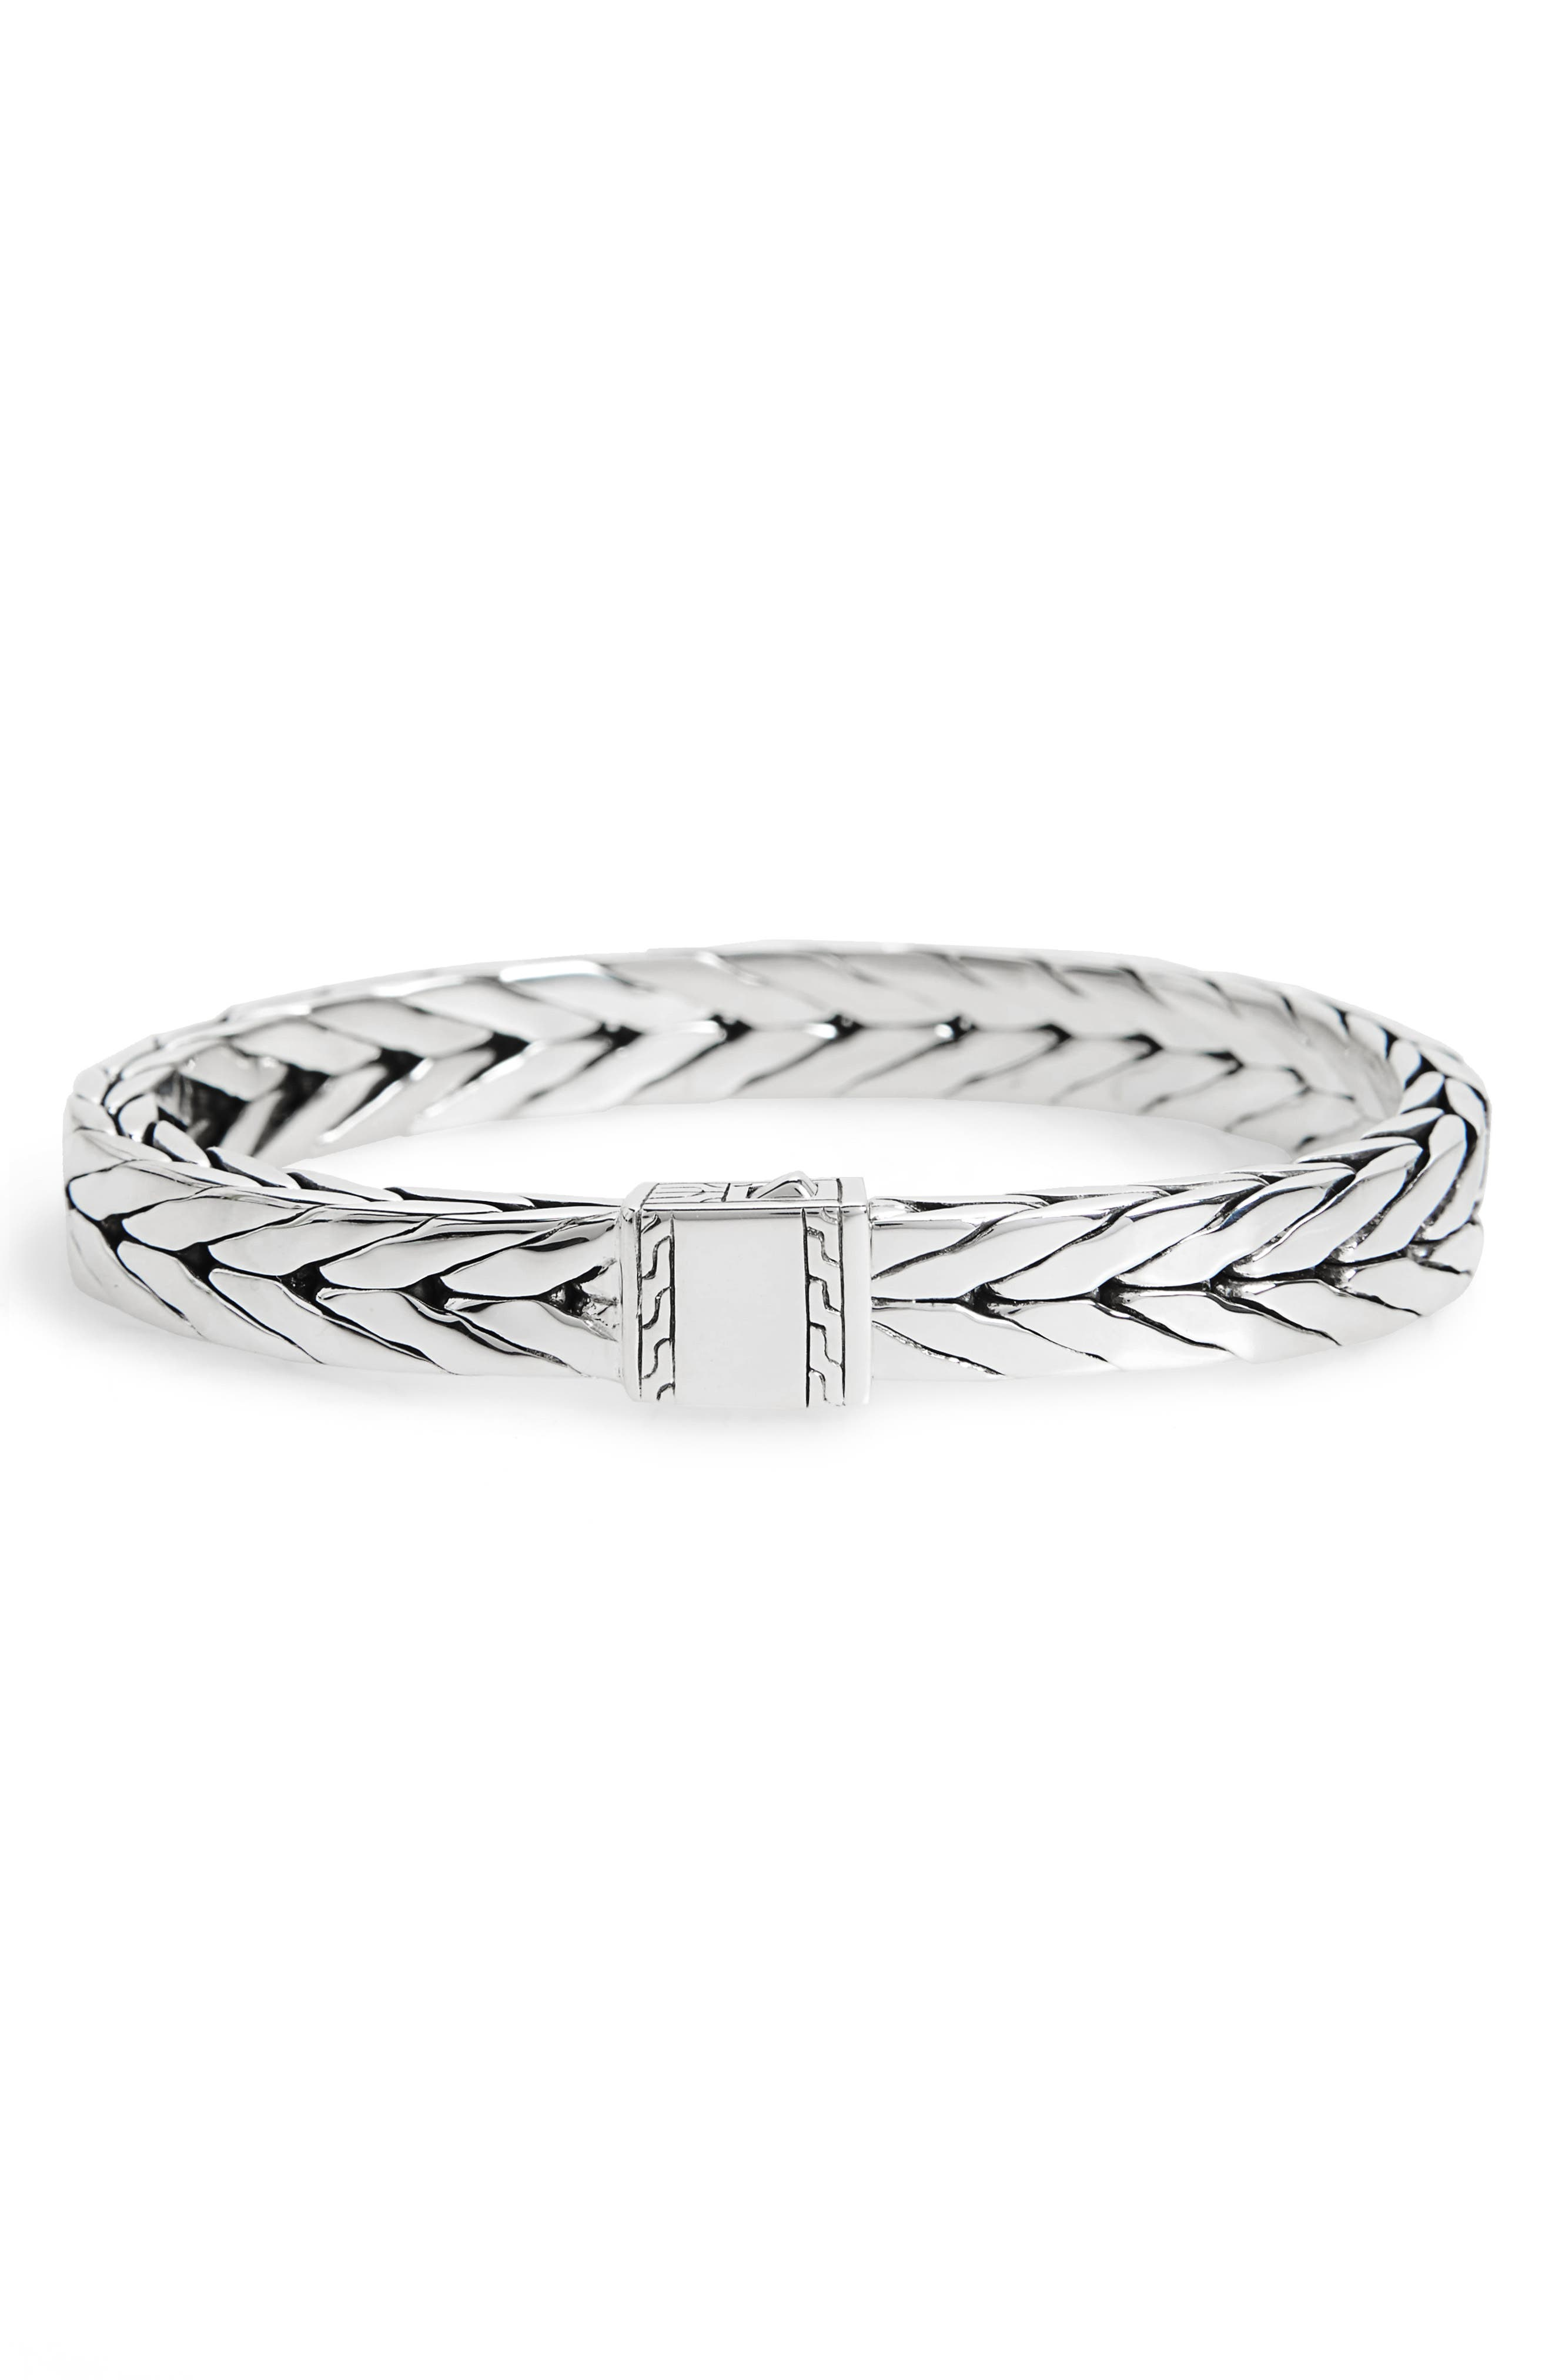 Modern Chain 9mm Bracelet,                         Main,                         color, SILVER